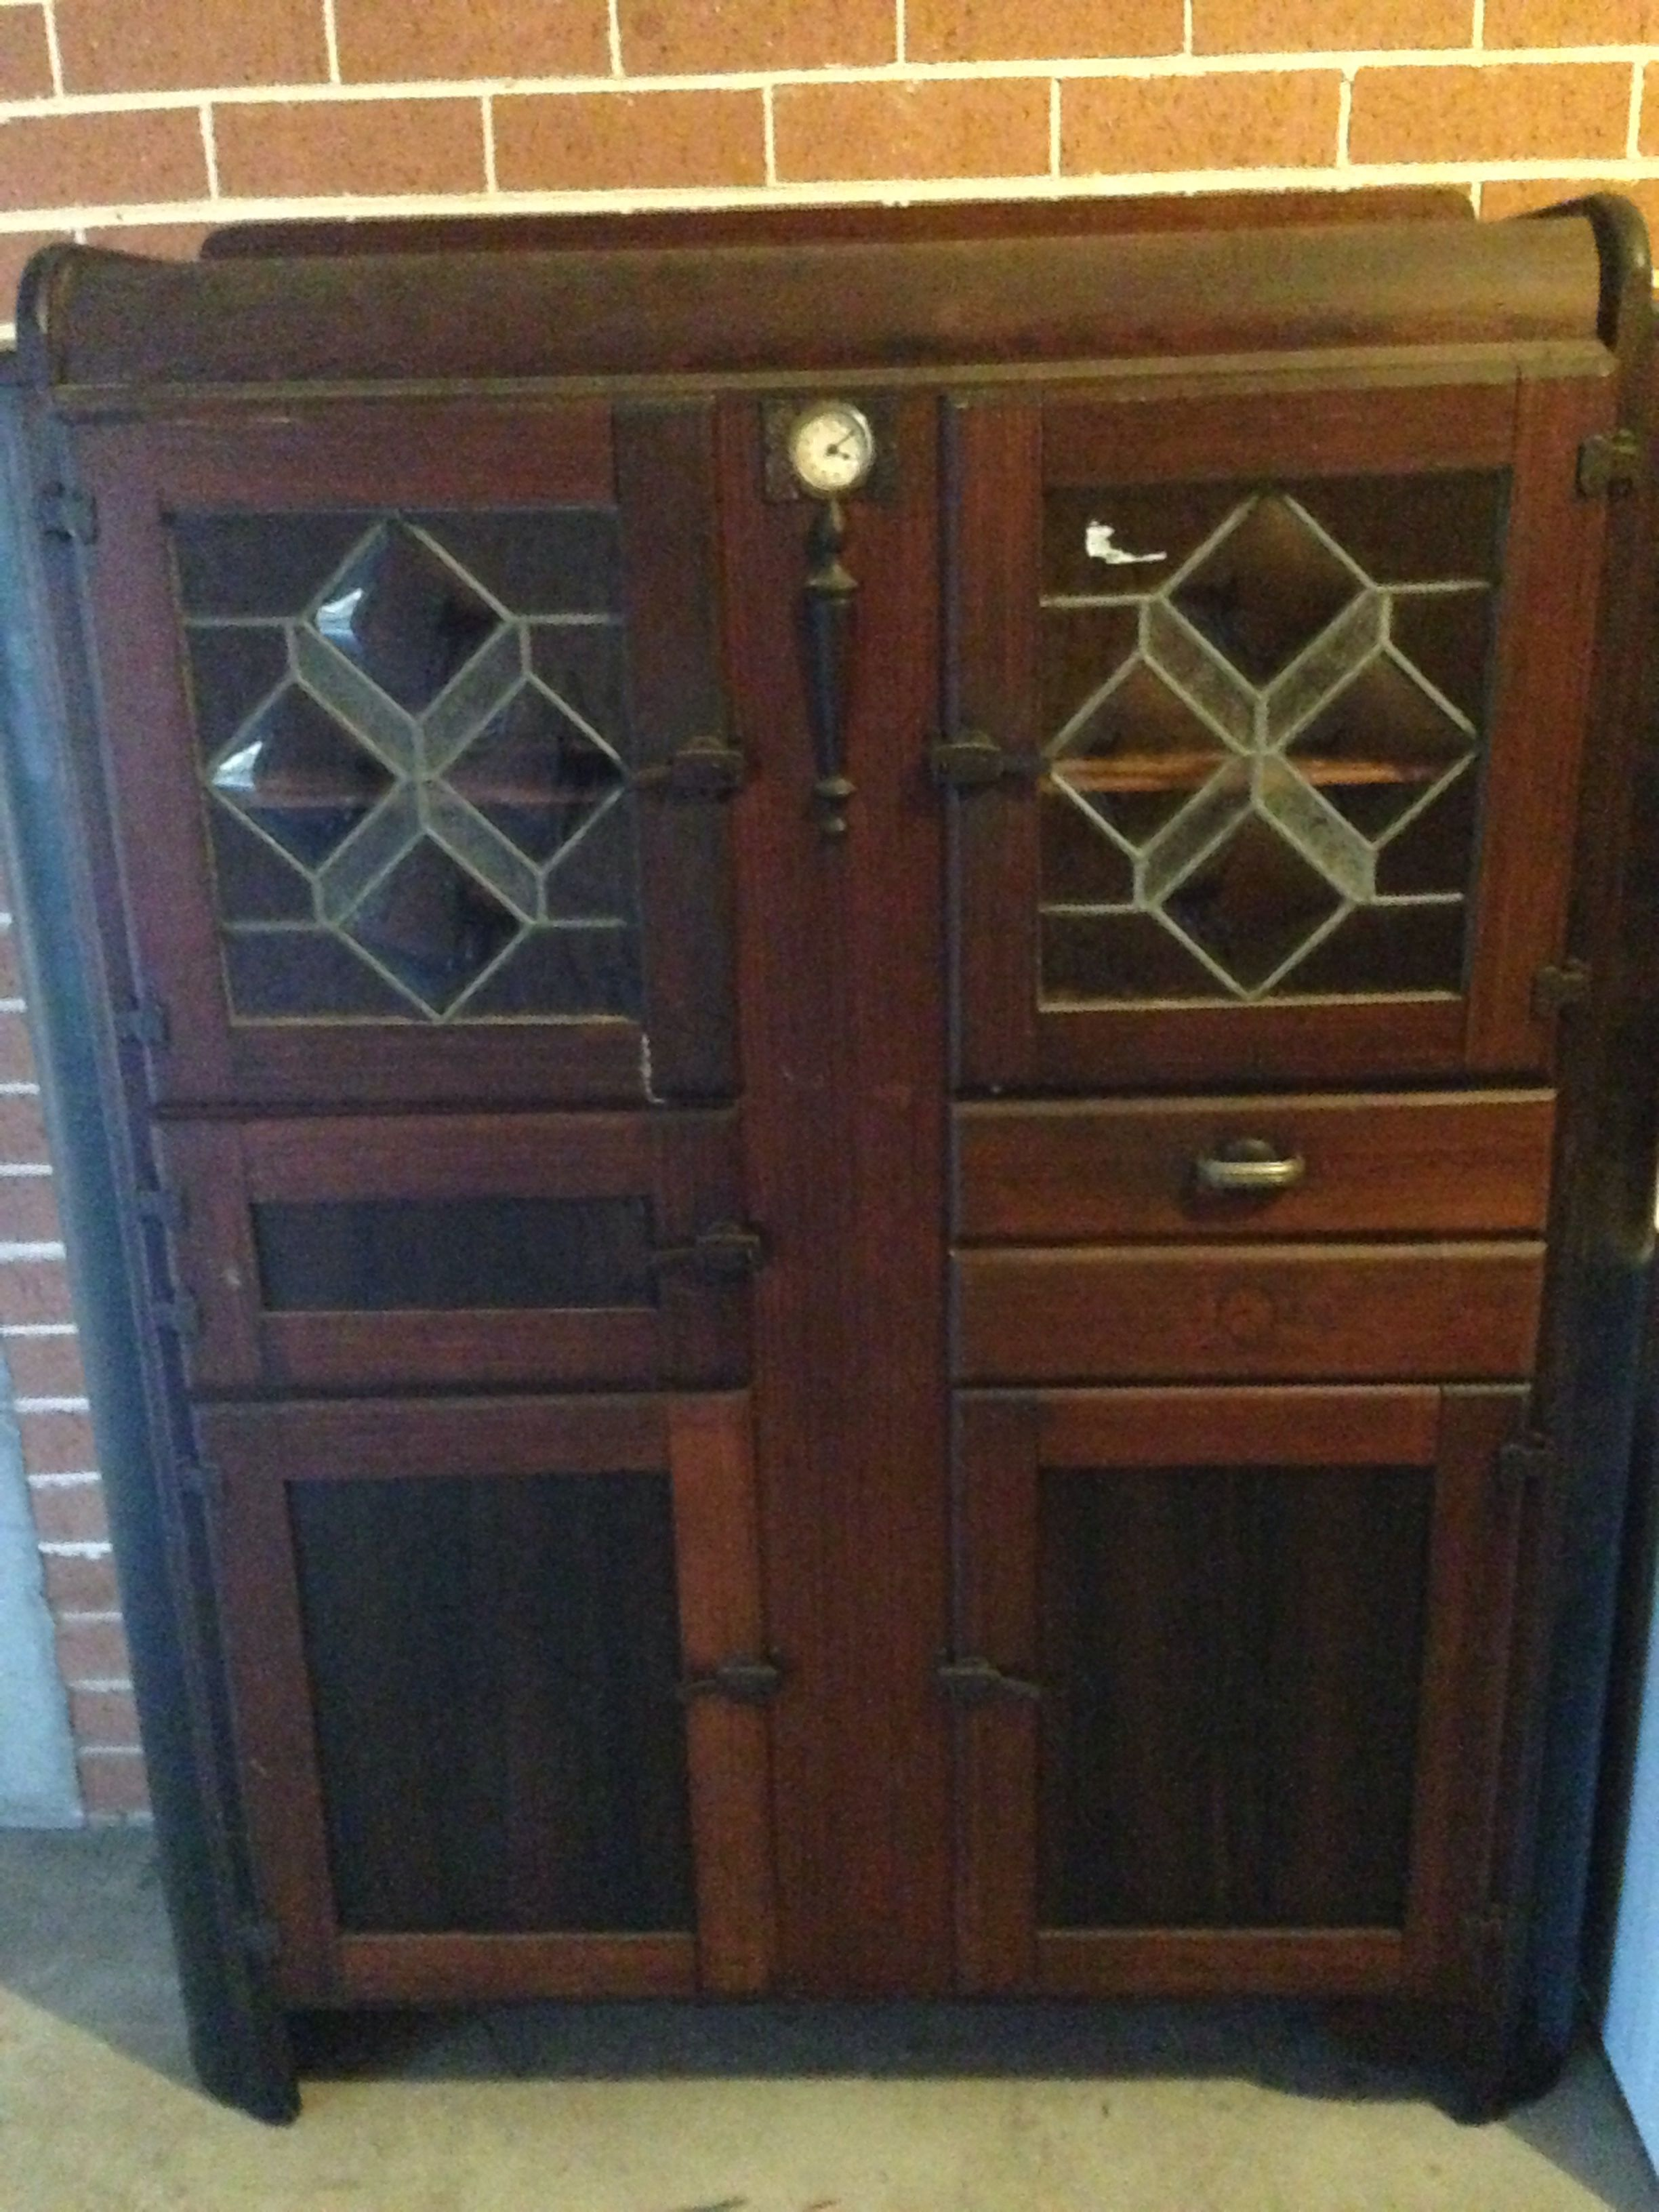 Kitchen cabinet circa 1940s | Old kitchen cabinets, Old ...